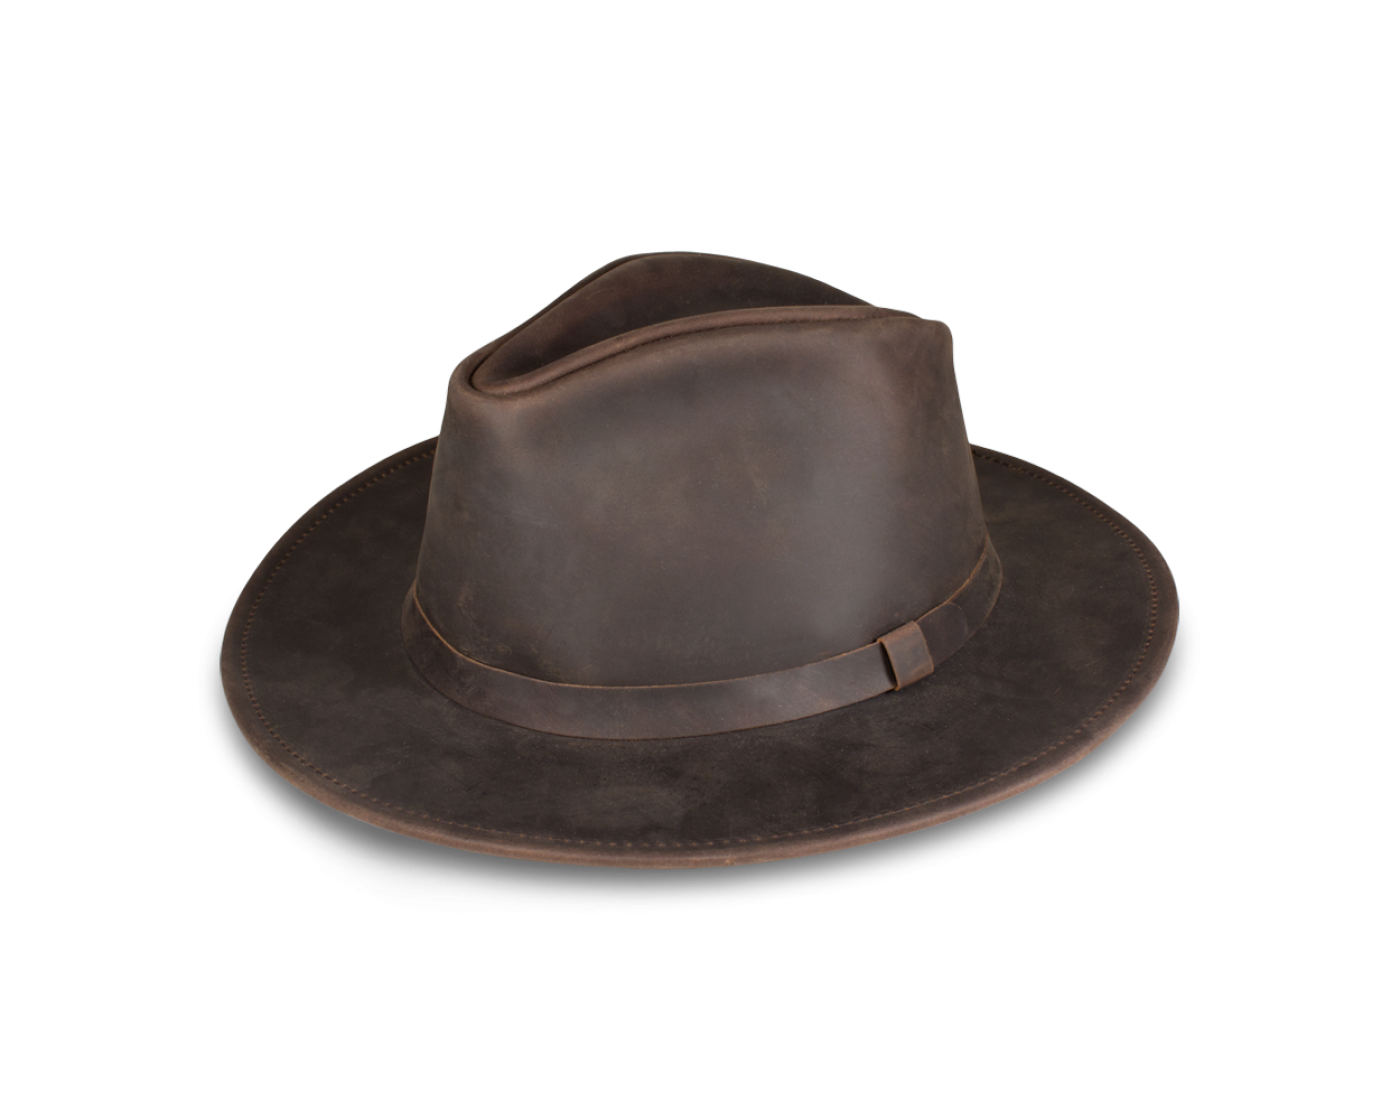 9c3d4658fc88e Goorin Bros North Fork hat. I NEED this hat